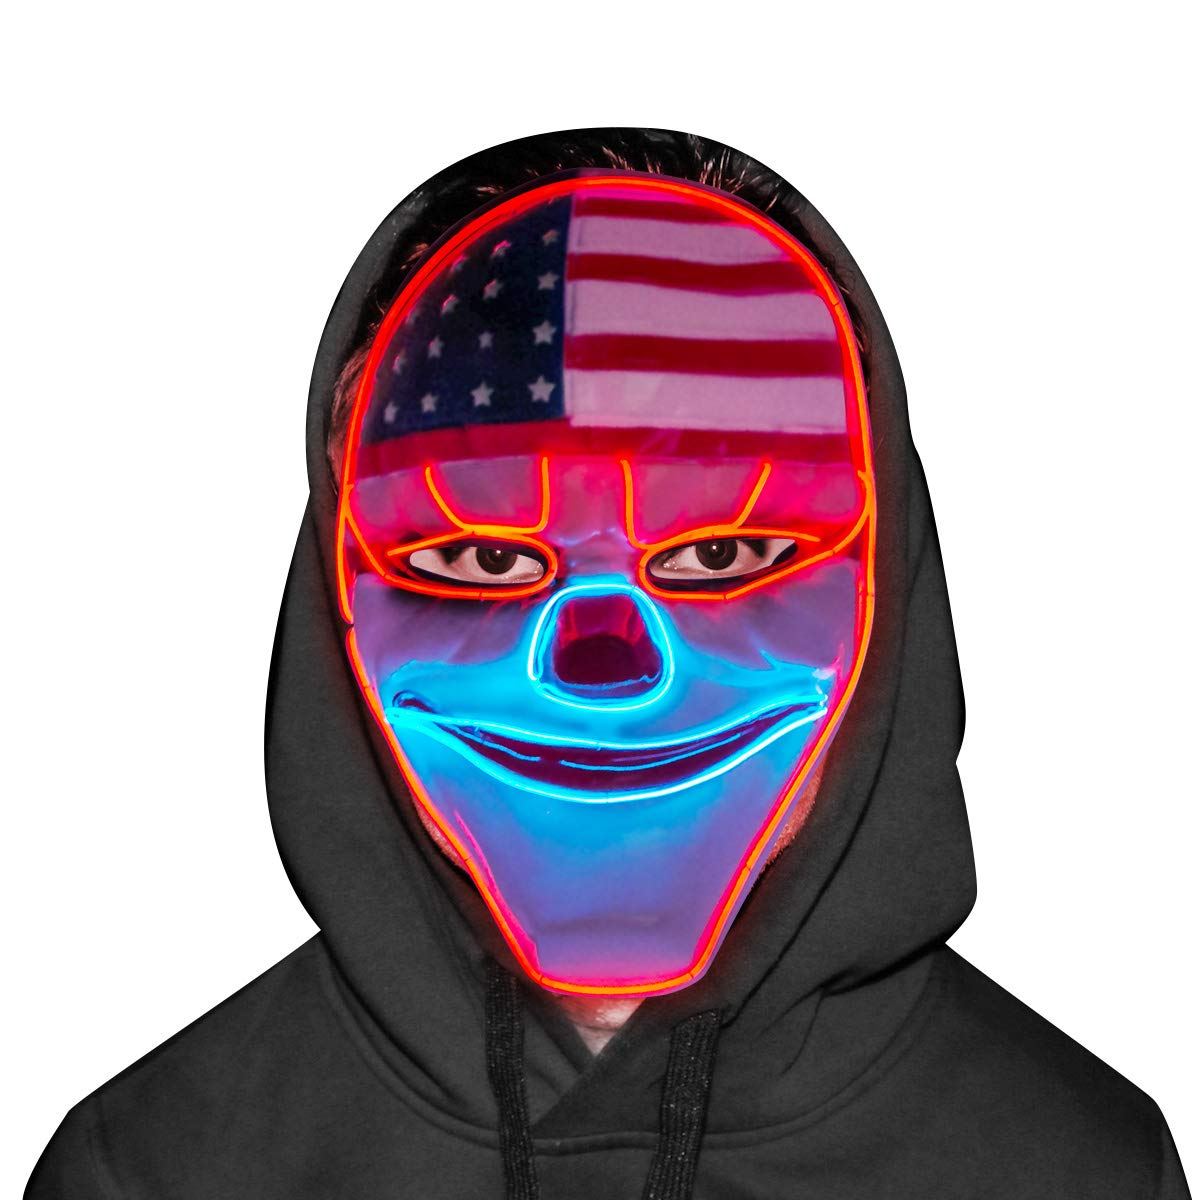 Payday Mask - Cool EL Wire Light Up Mask with Cushion Sponage